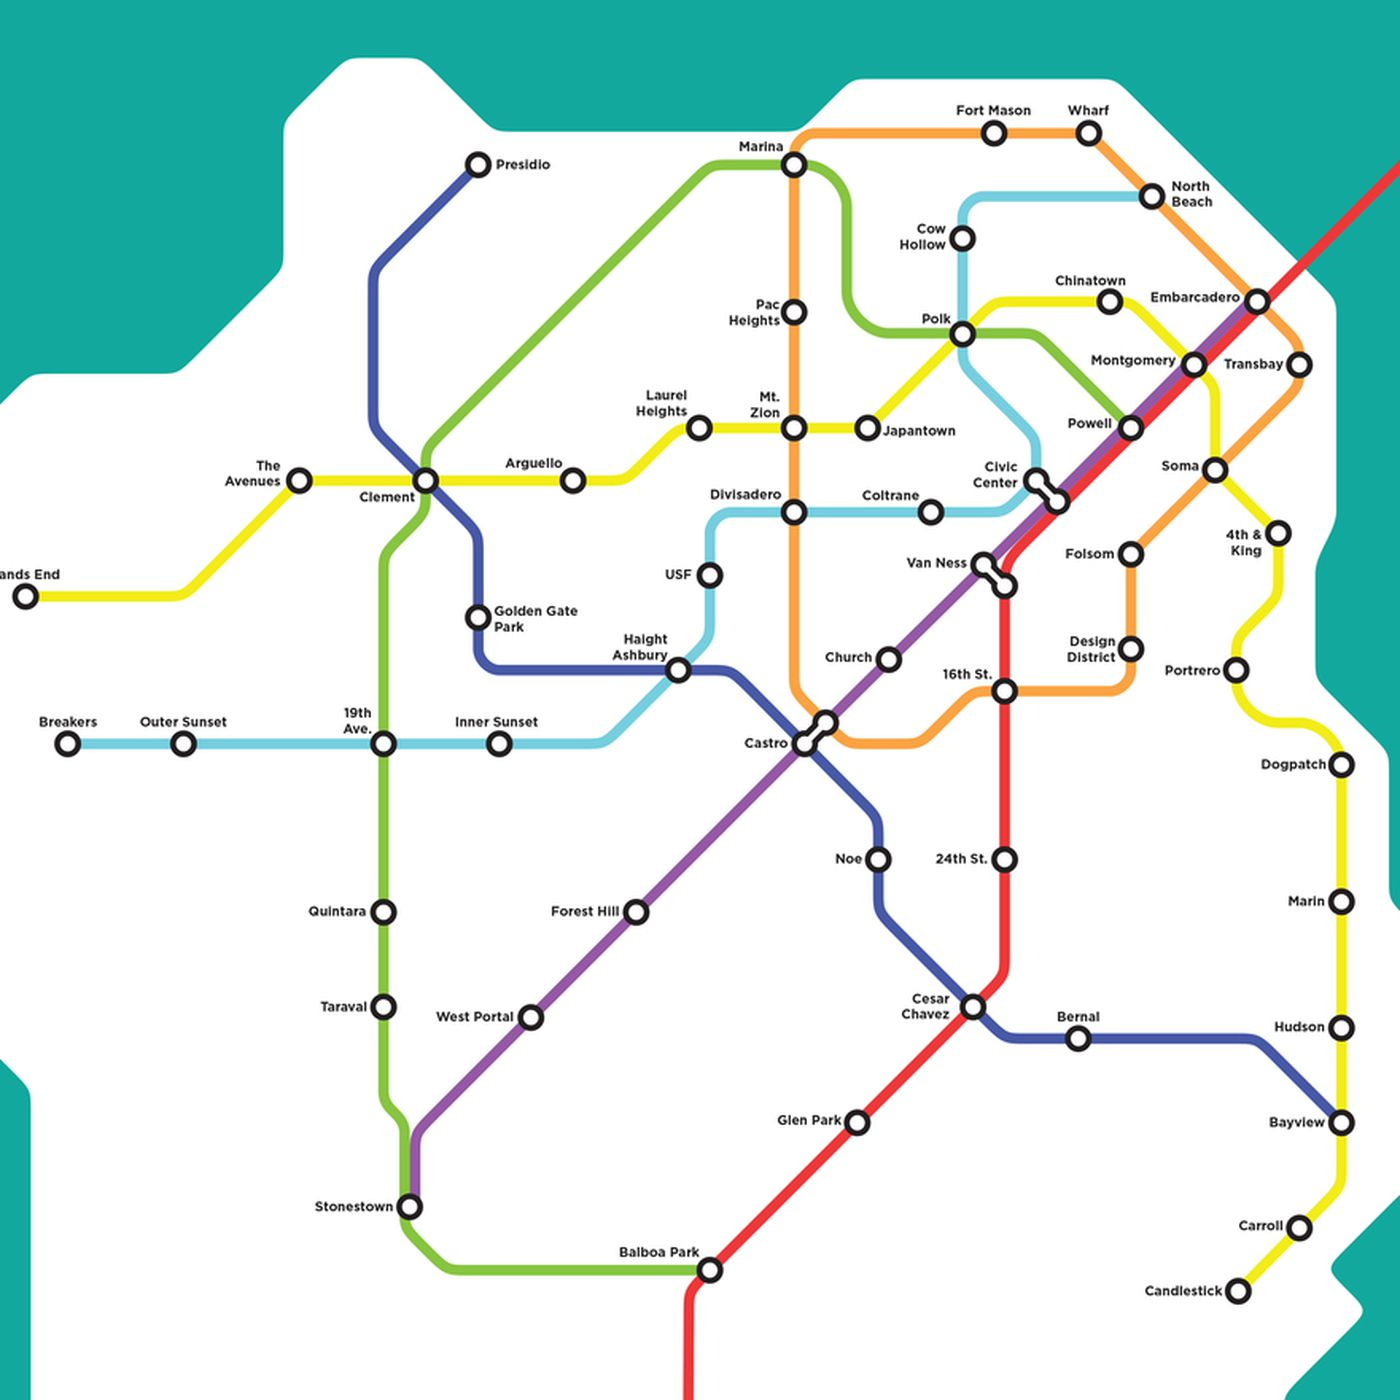 Wouldn't it be glorious if this fantasy San Francisco BART ... on bart station map, bart line map, san francisco bus routes, bart extension map, amtrak route map, los angeles metro route map, sf bart map, east bay bart map, bart hotel map, bay area bart route map, bart rail map, sfo bart map, bart super mario map, washington metro route map, bart system map, bart schedule & map, bay area rail map, bart subway map, bart train map, bart parking map,